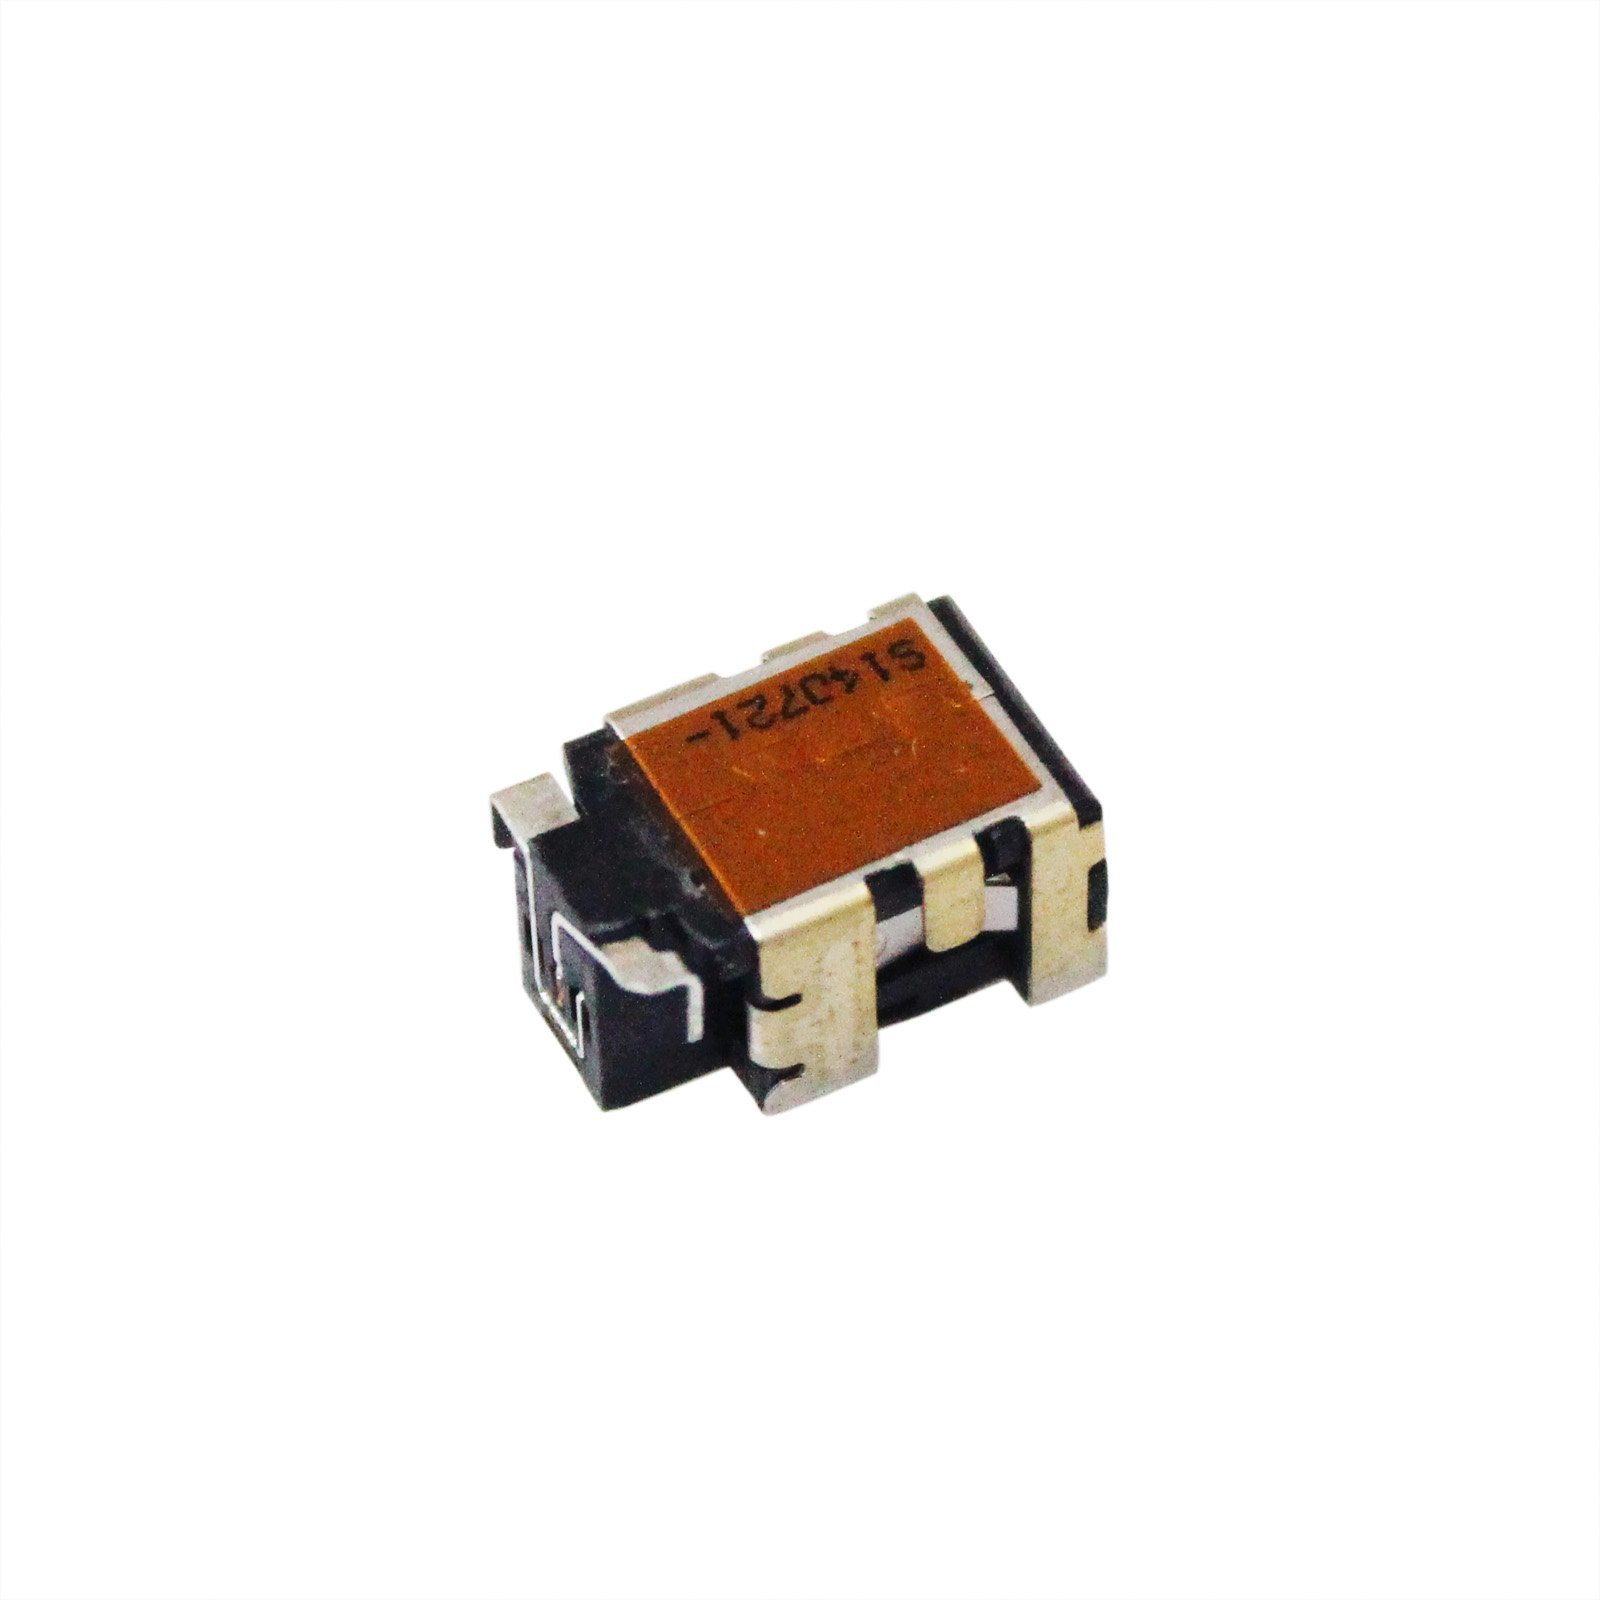 GinTai DC Power Jack Replacement for ASUS Compatible with n501jw ux501jw G501J G501JW G501JW-DS71 UX501V UX501VW by GinTai (Image #1)